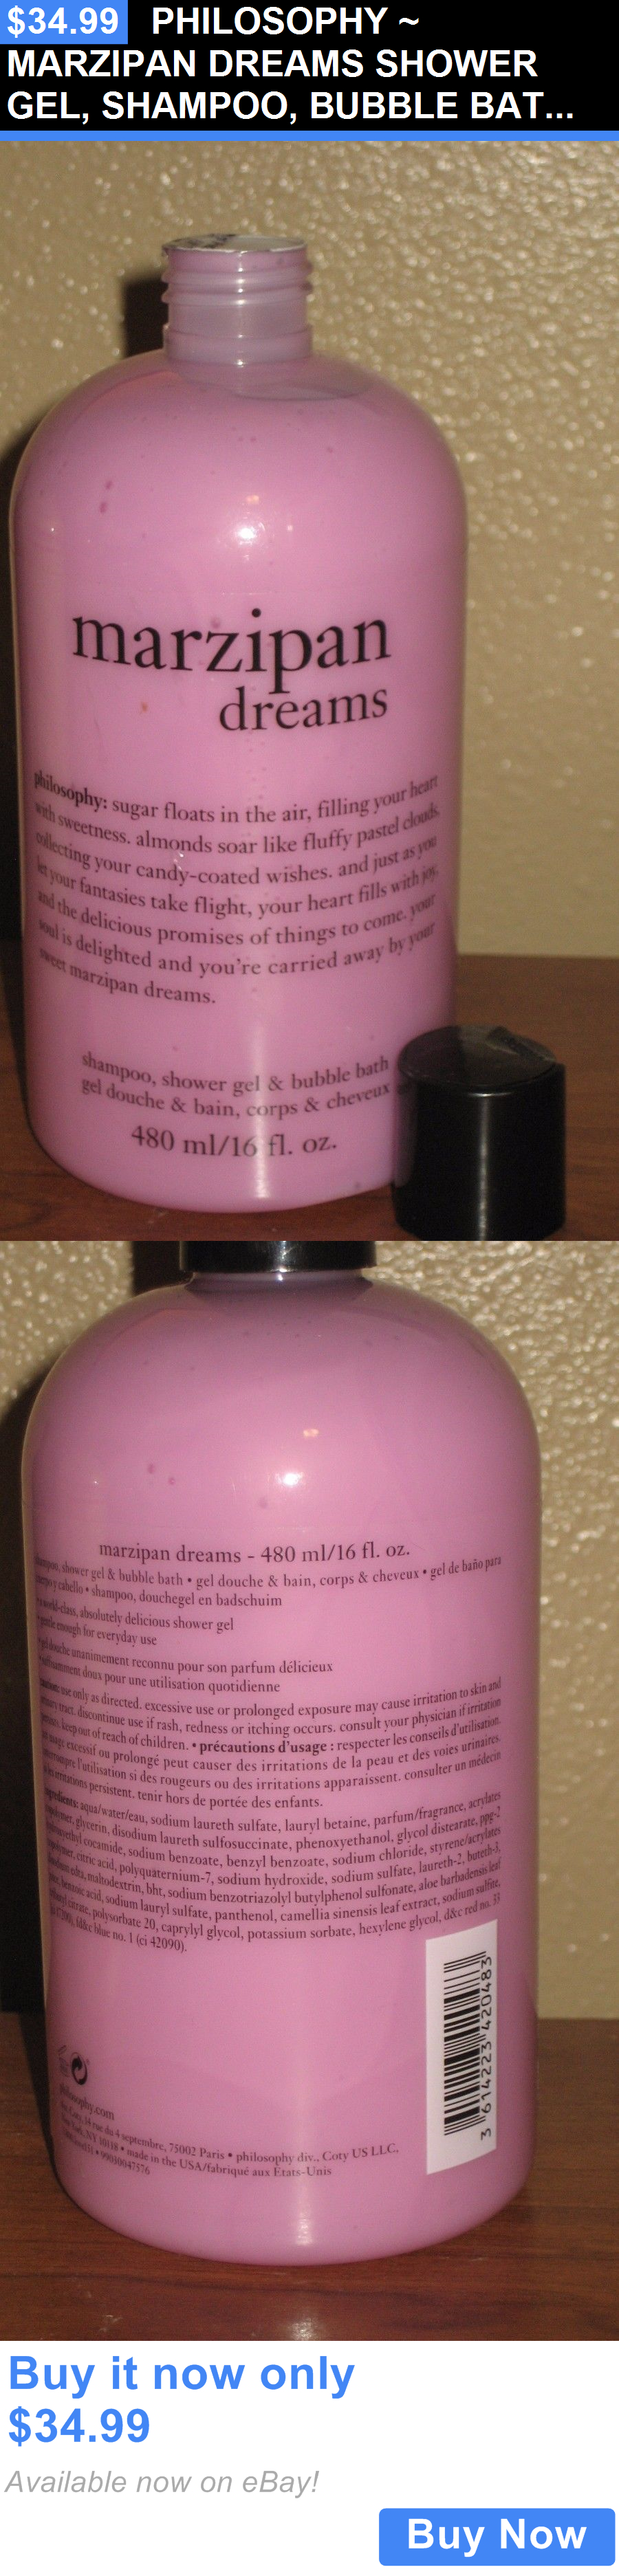 body washes and shower gels philosophy marzipan dreams shower body washes and shower gels philosophy marzipan dreams shower gel shampoo bubble